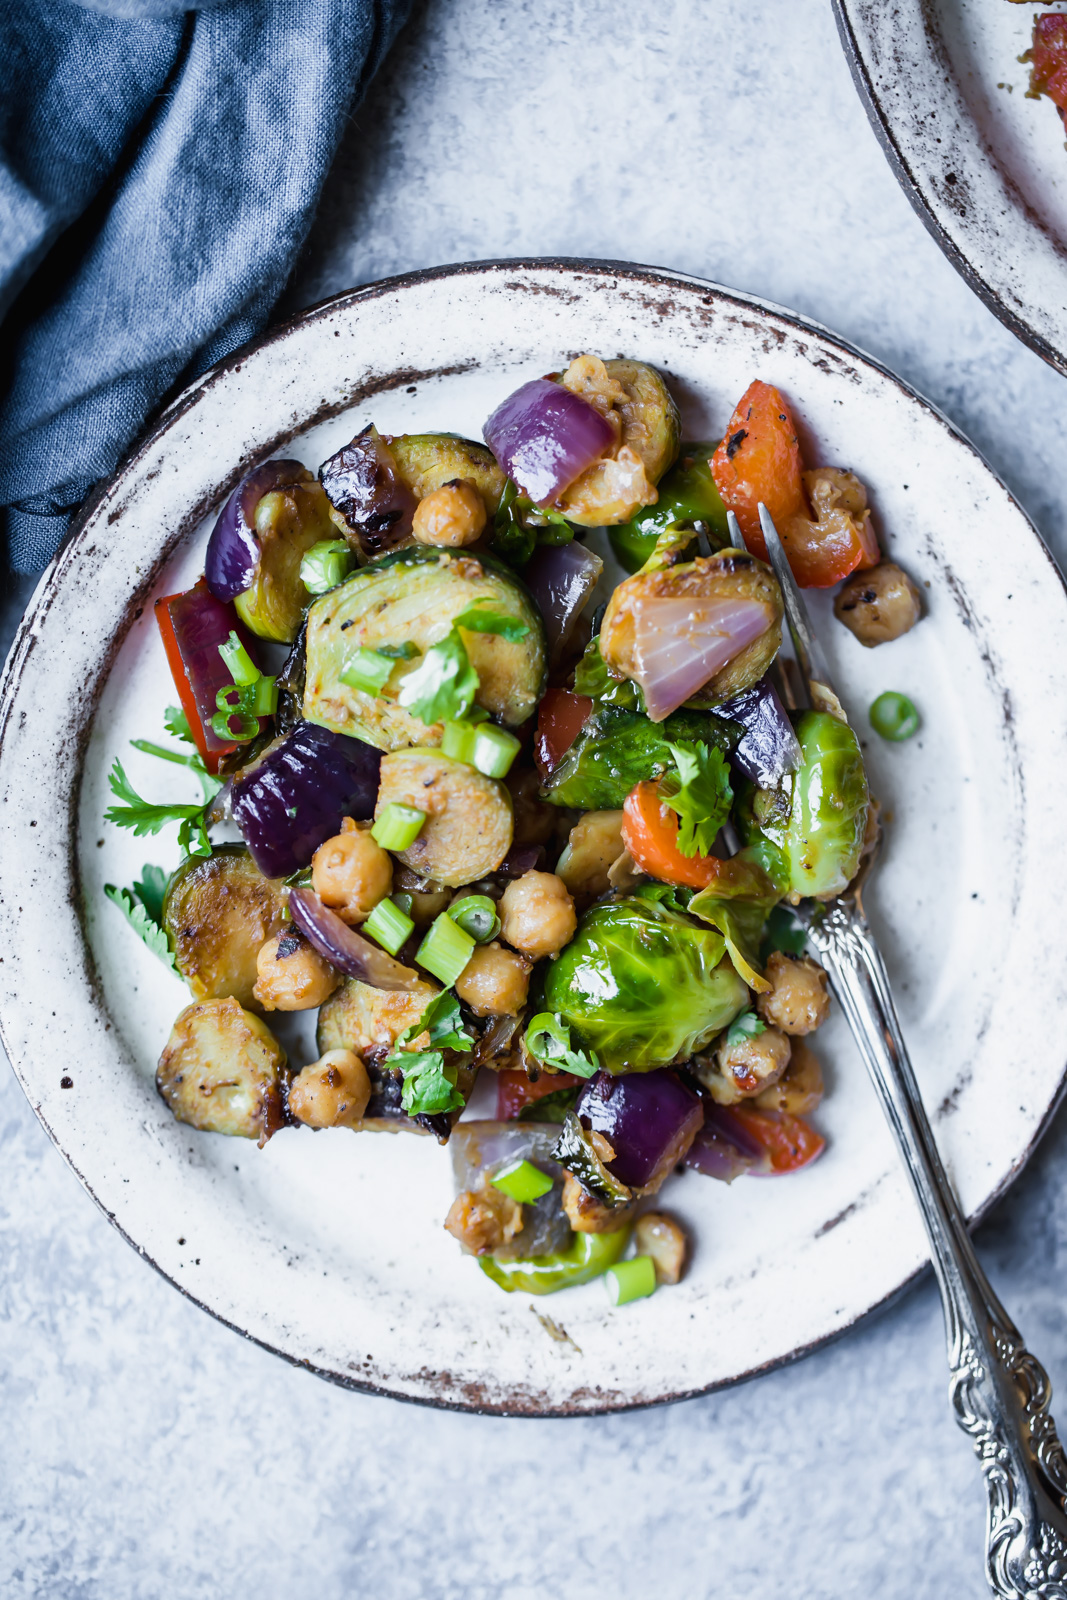 brussels sprouts stir fry with chickpeas on a plate